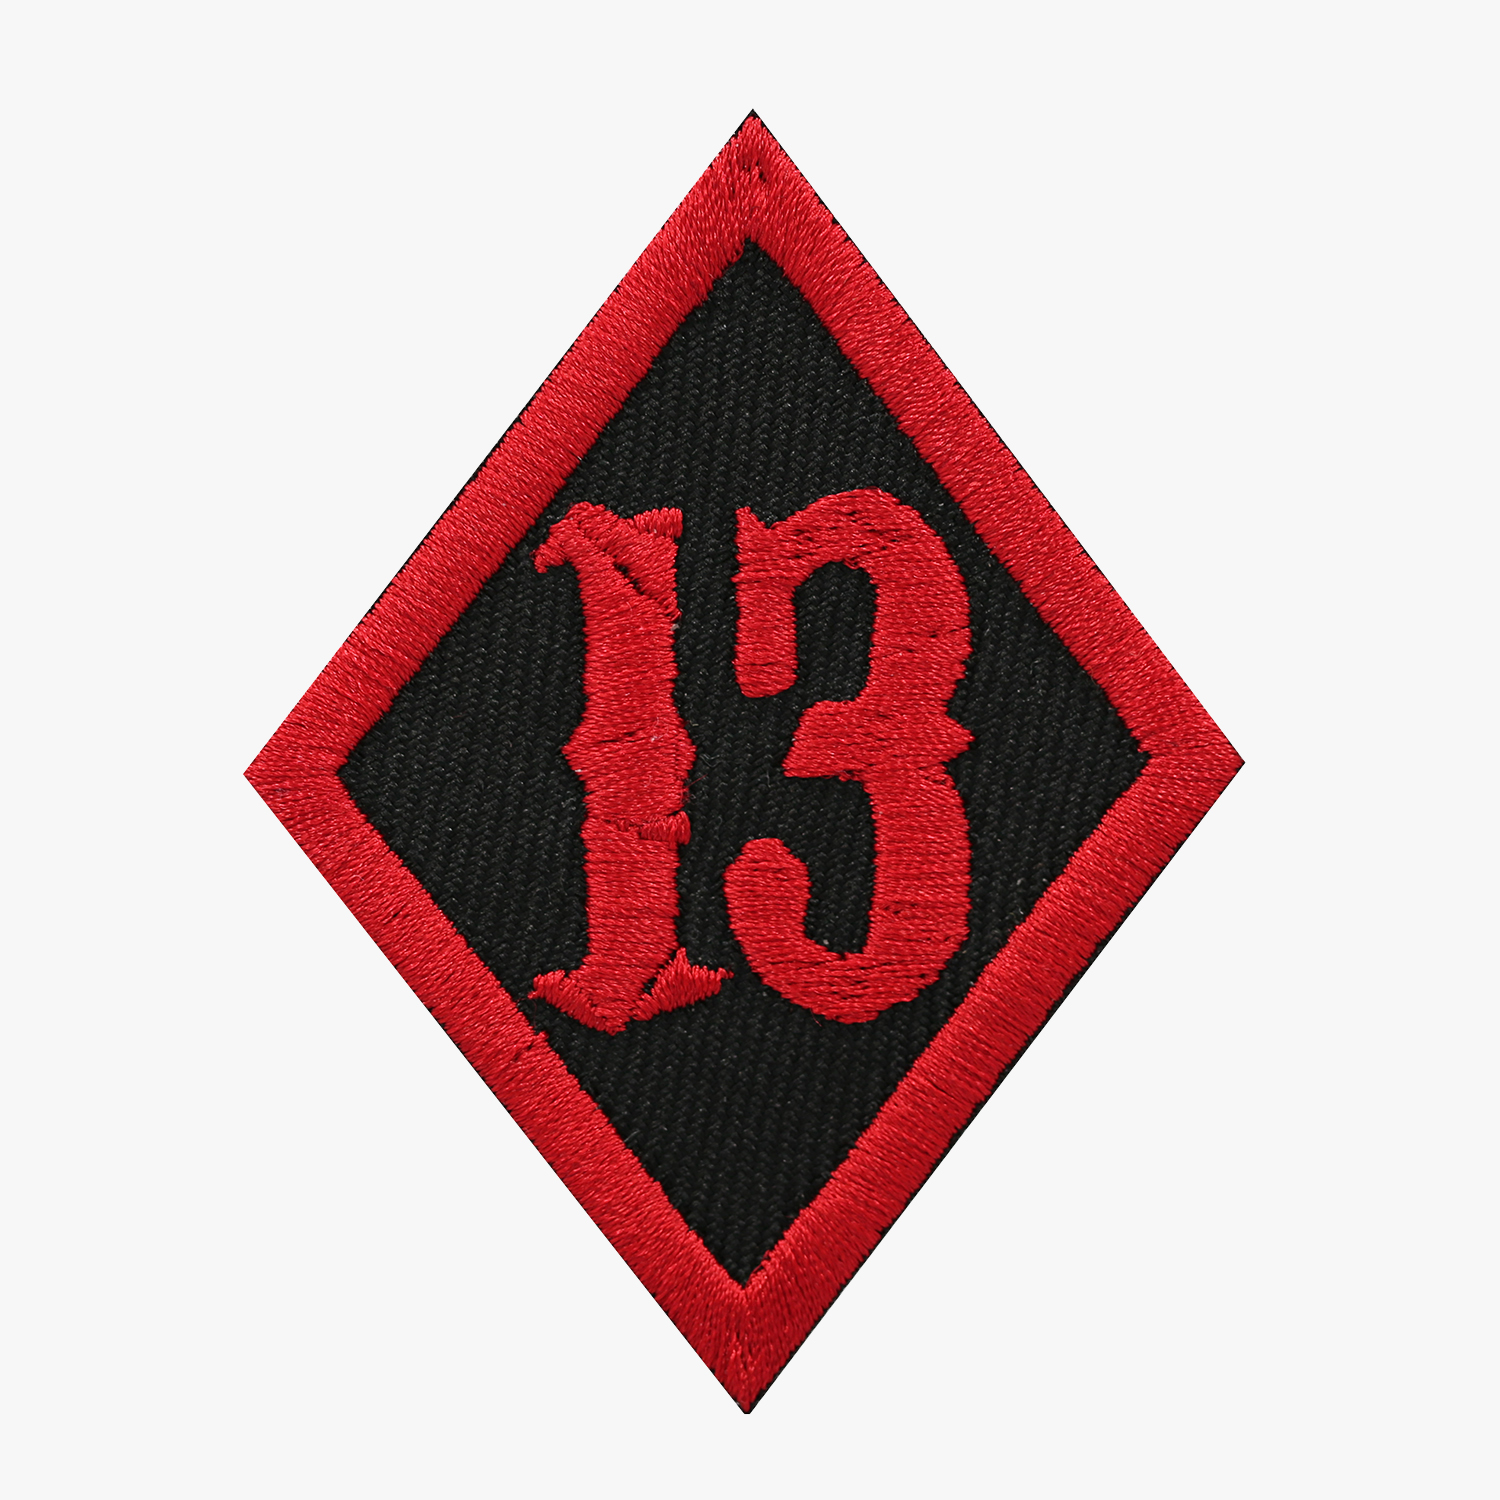 NUMBER 13 DIAMOND BIKER MC PATCH